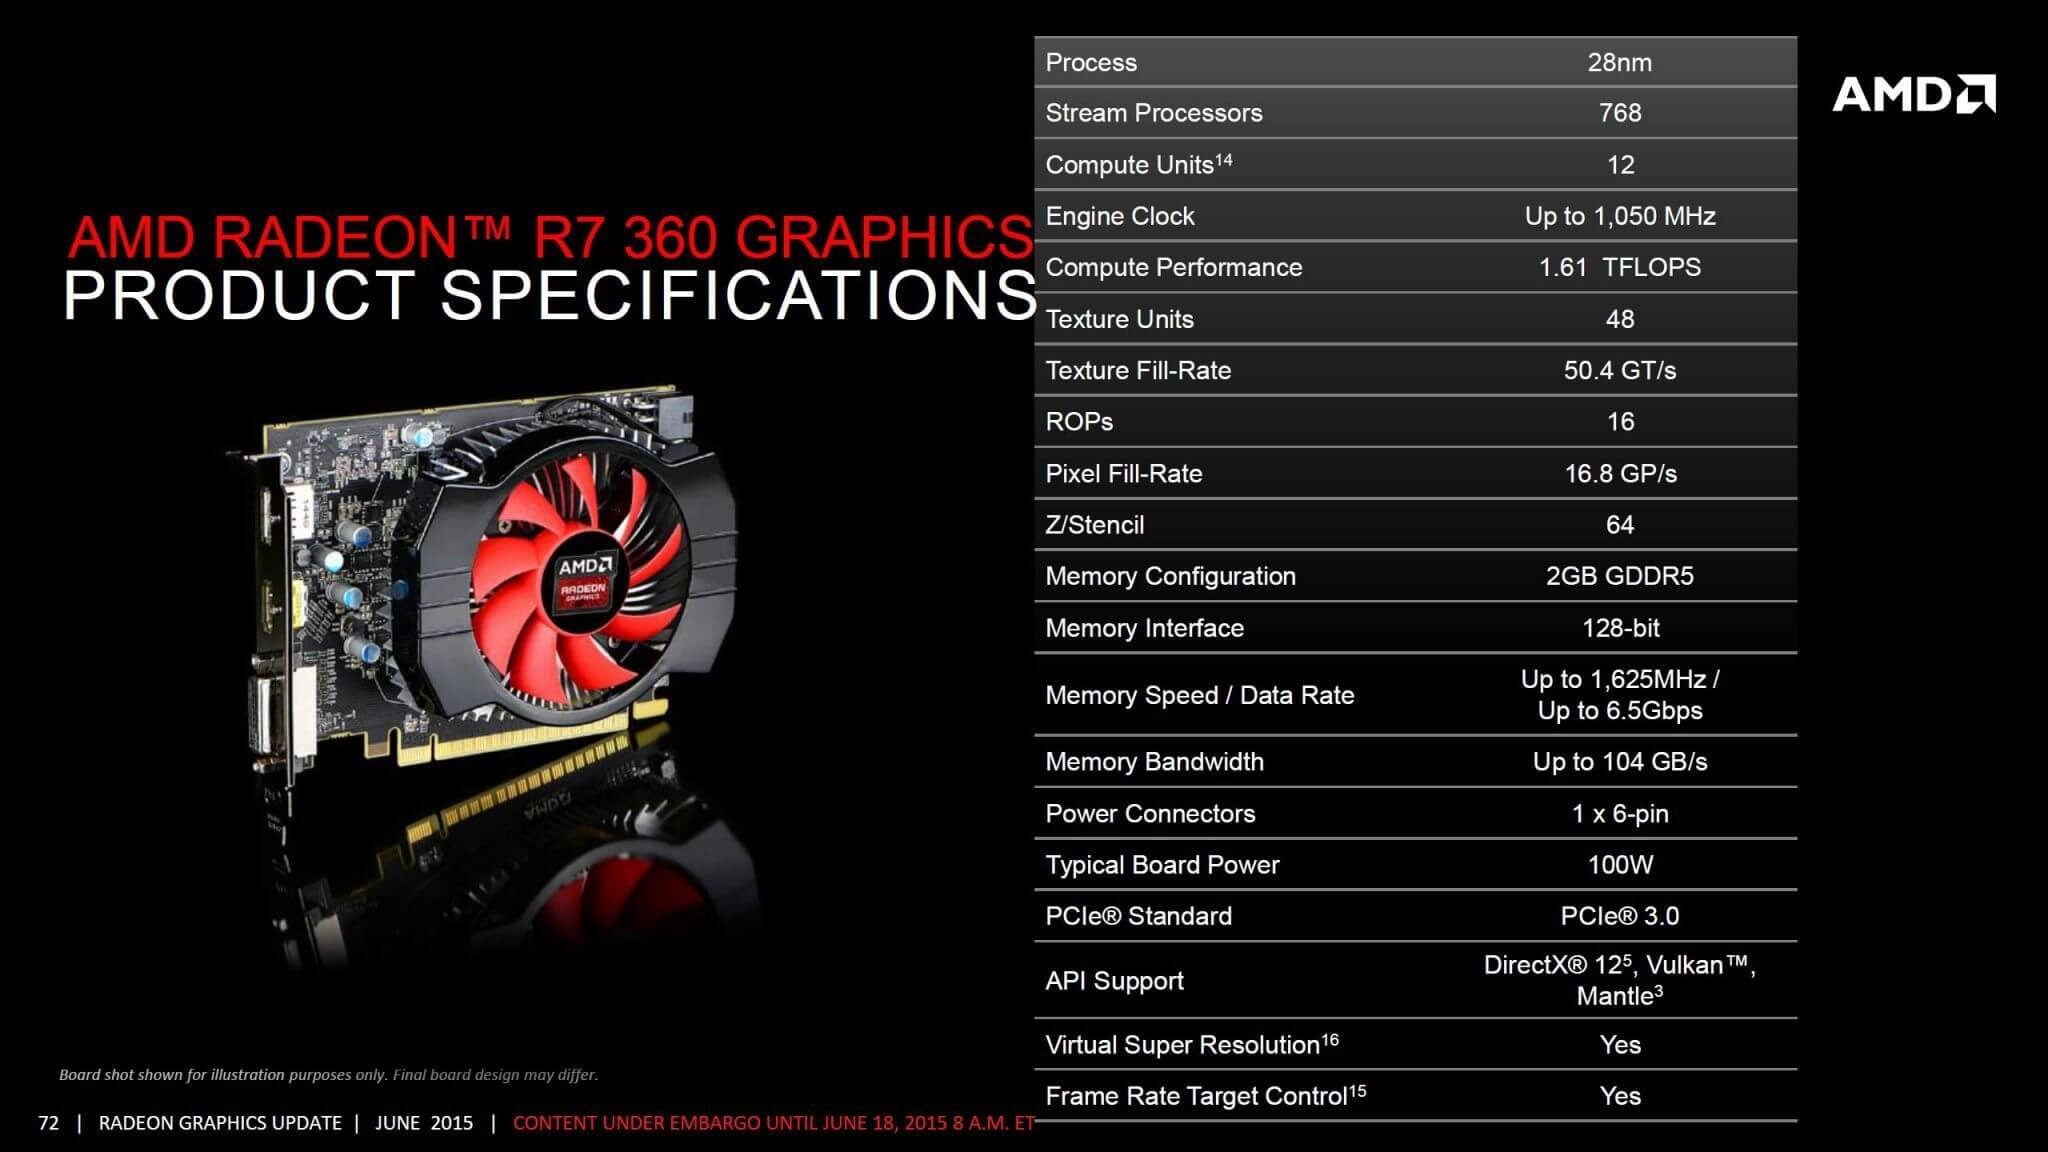 Smt amd r7 300 series r7 360 specifications